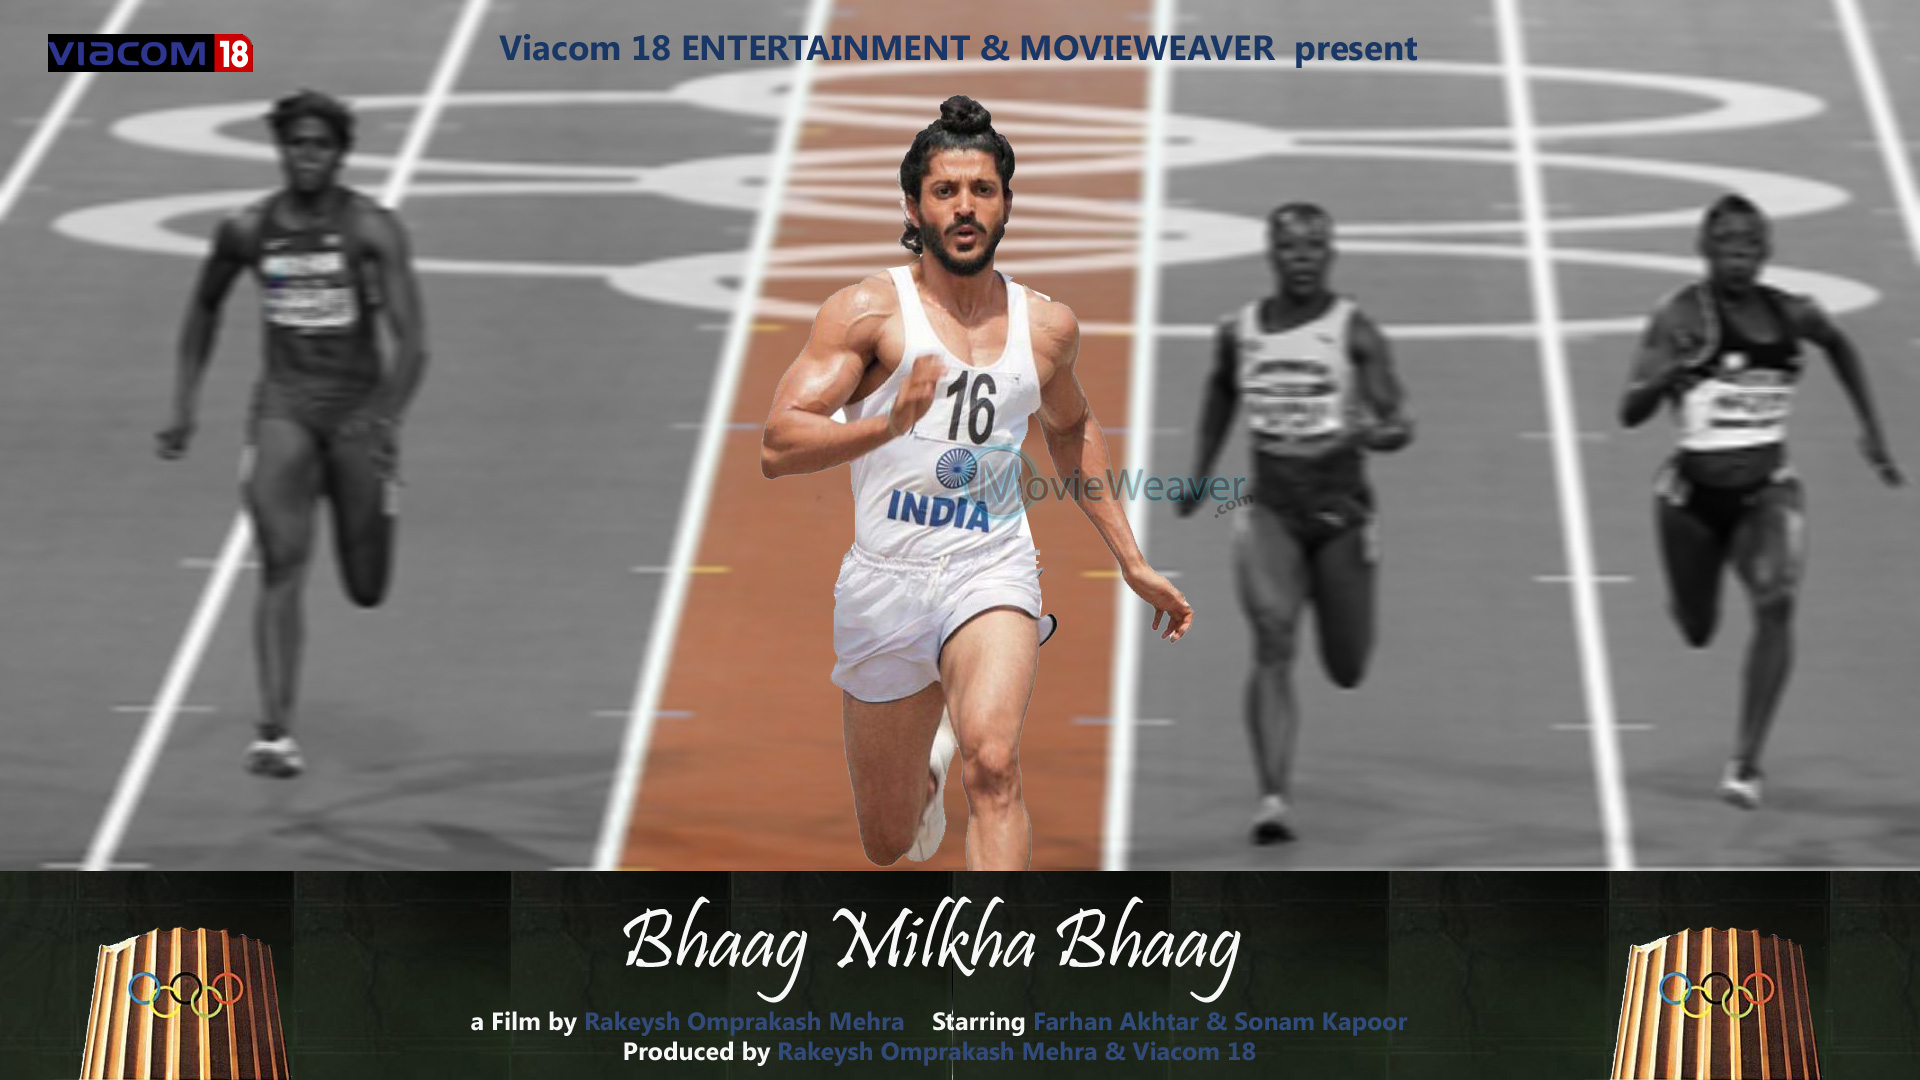 bhaag milkha bhaag 2013 mp3 songs free download